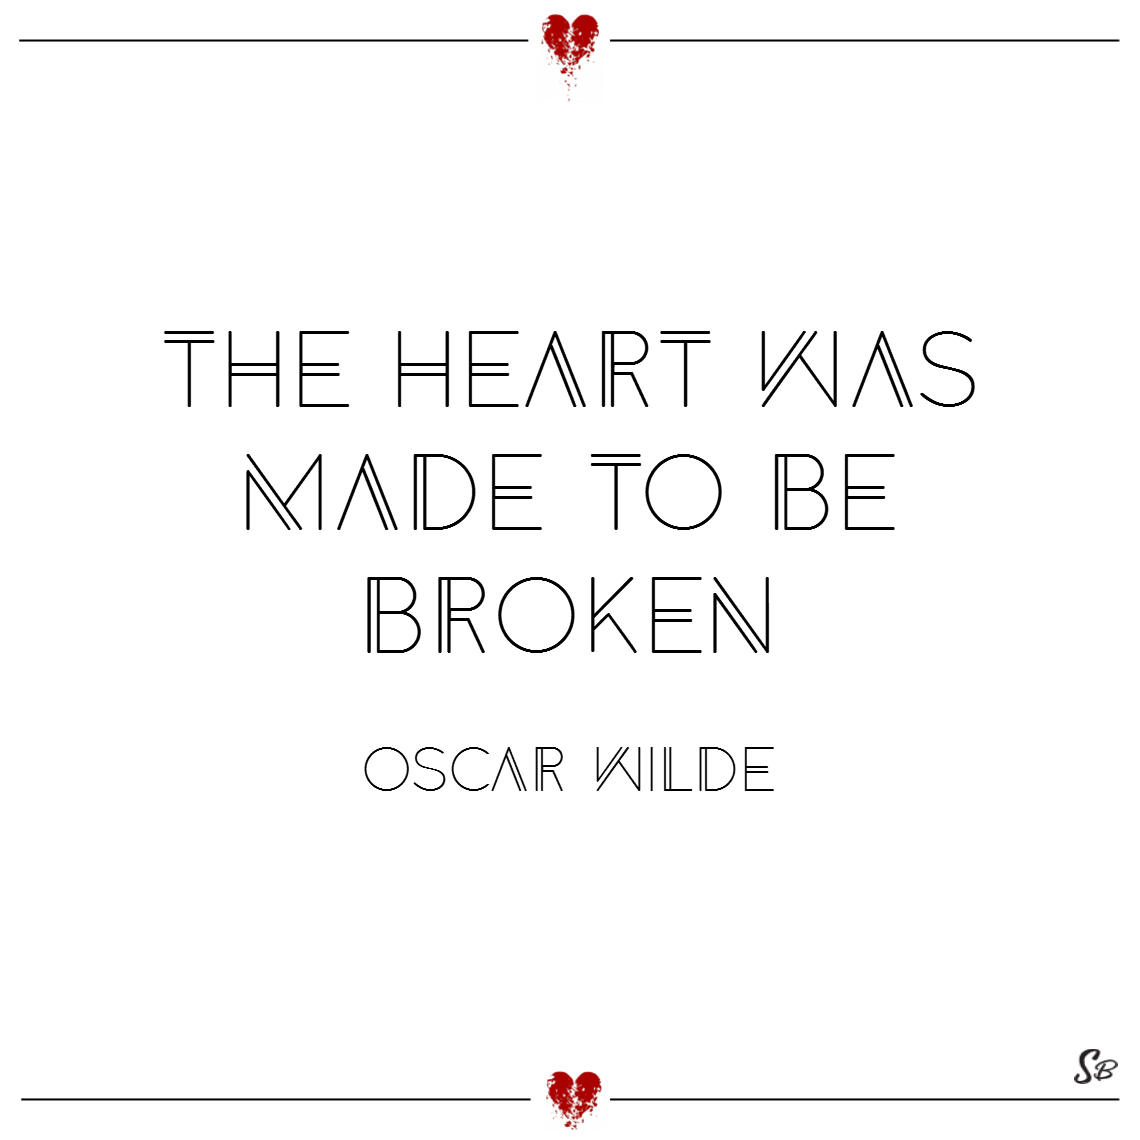 The heart was made to be broken. – oscar wilde